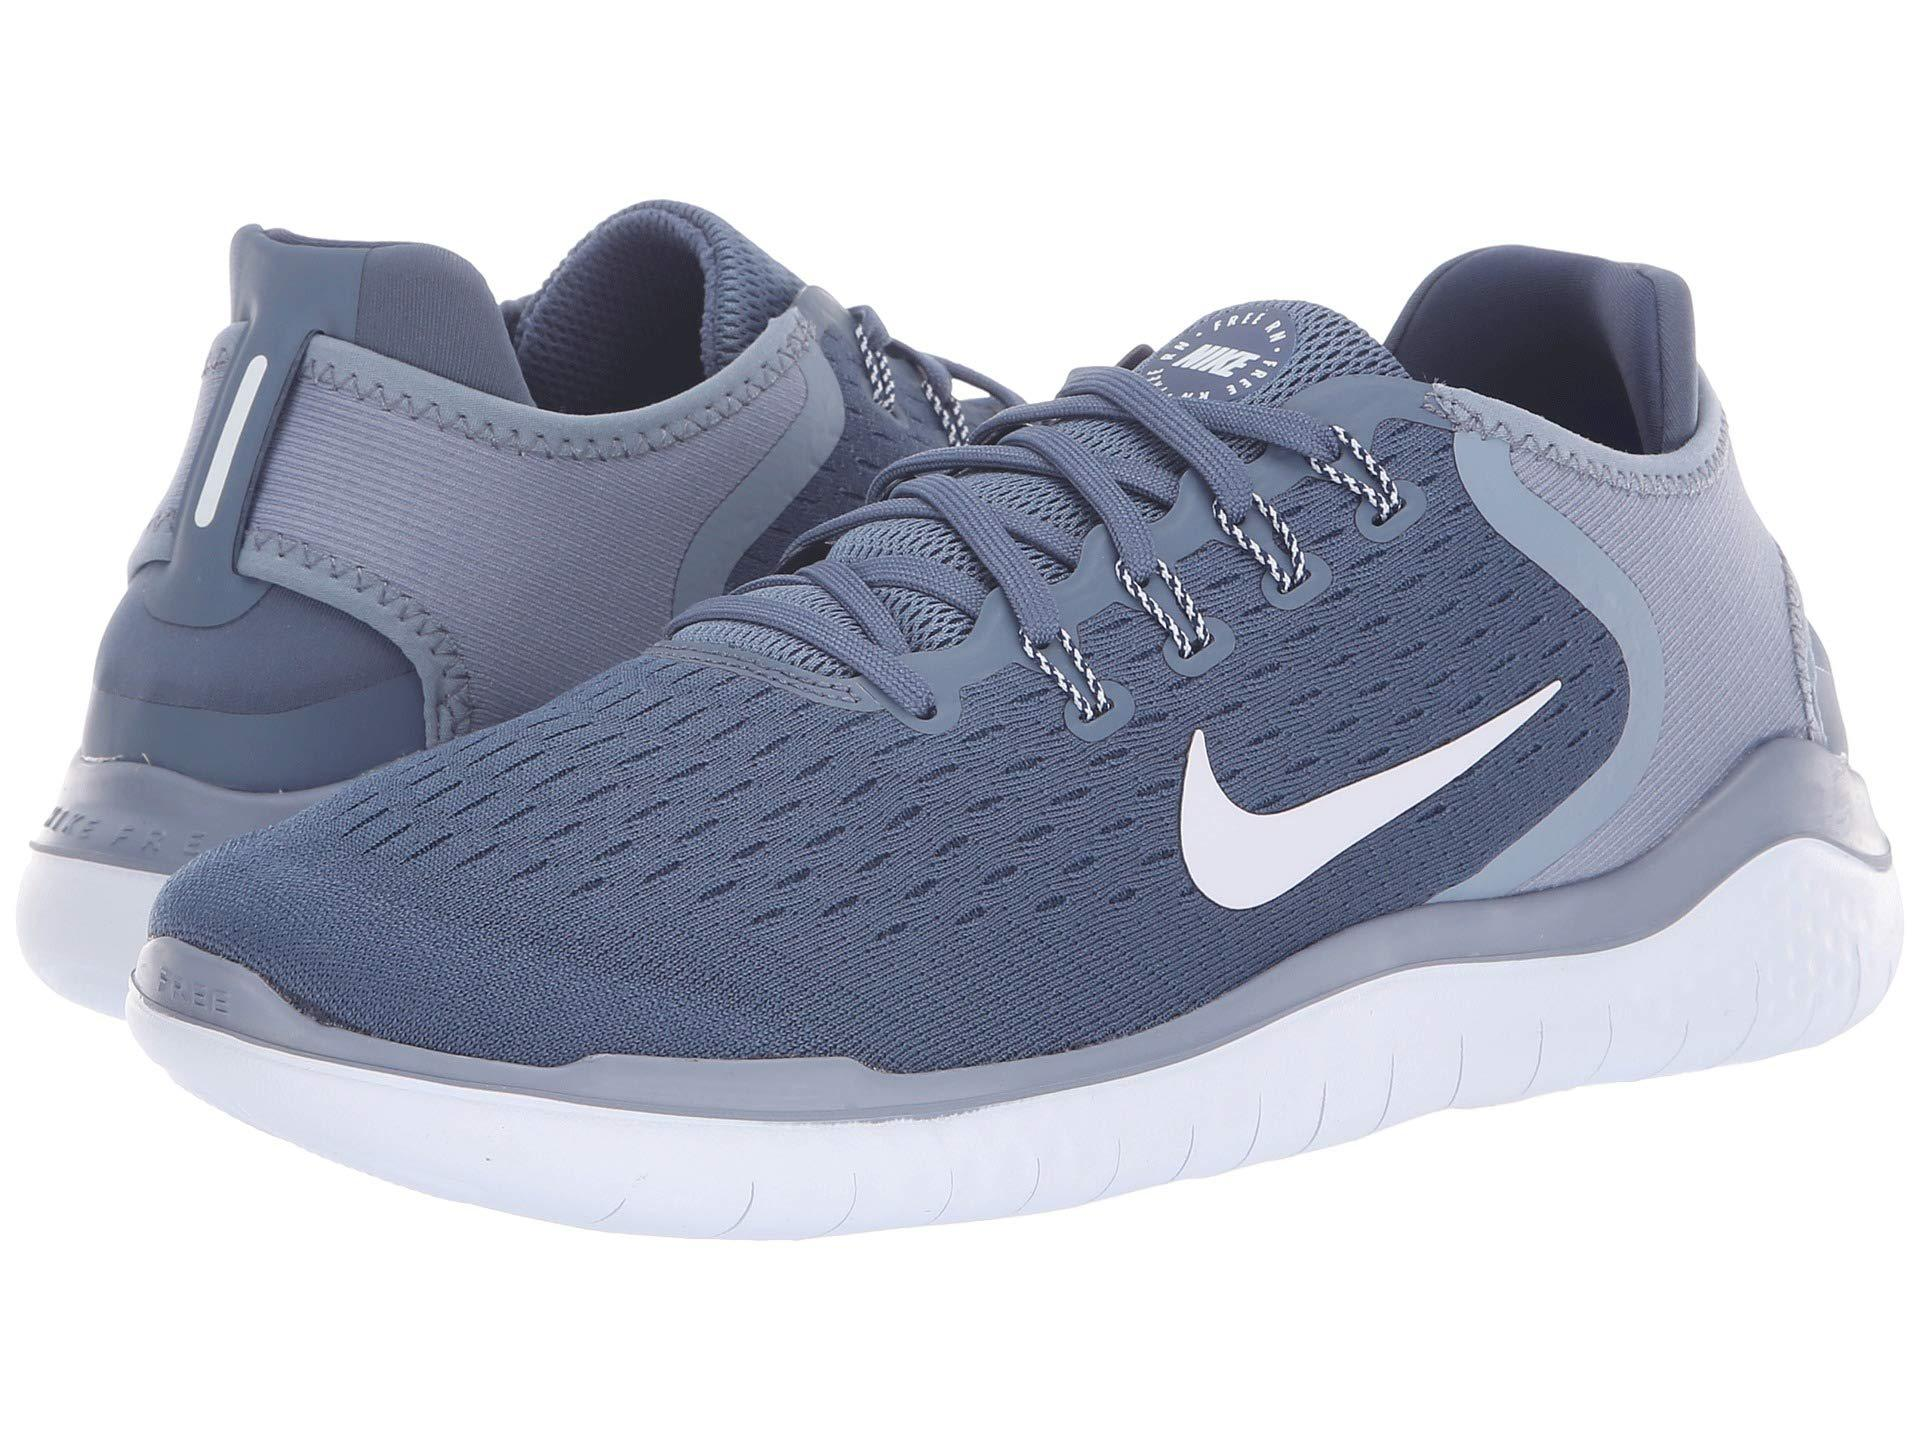 6c844dc0a696 Lyst - Nike Free Rn 2018 (blue Force white green Abyss) Men s ...